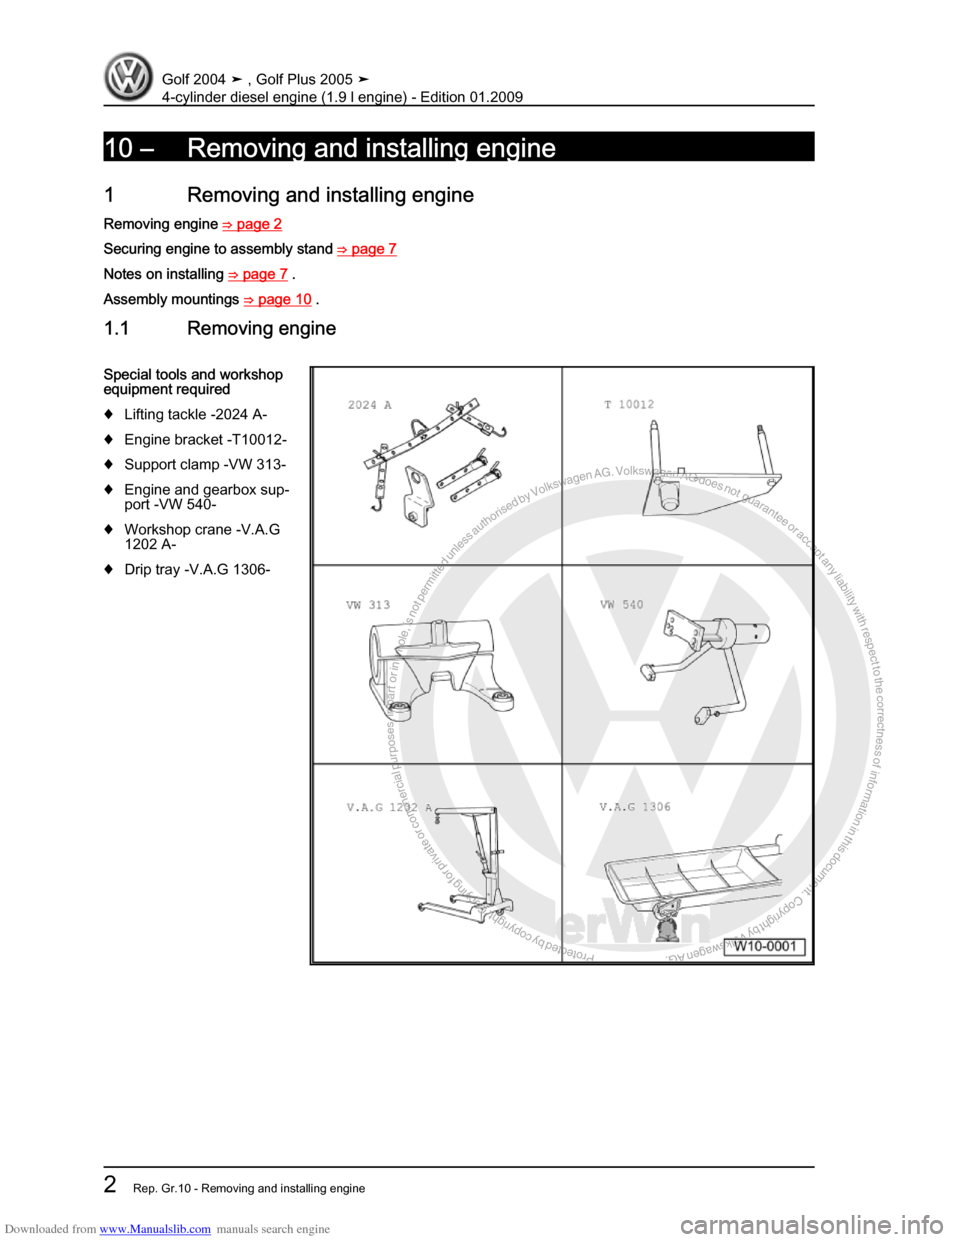 Volkswagen Golf Plus 2005 1k 5g Service Workshop Manual Vw 1 8 Engine Diagram Page